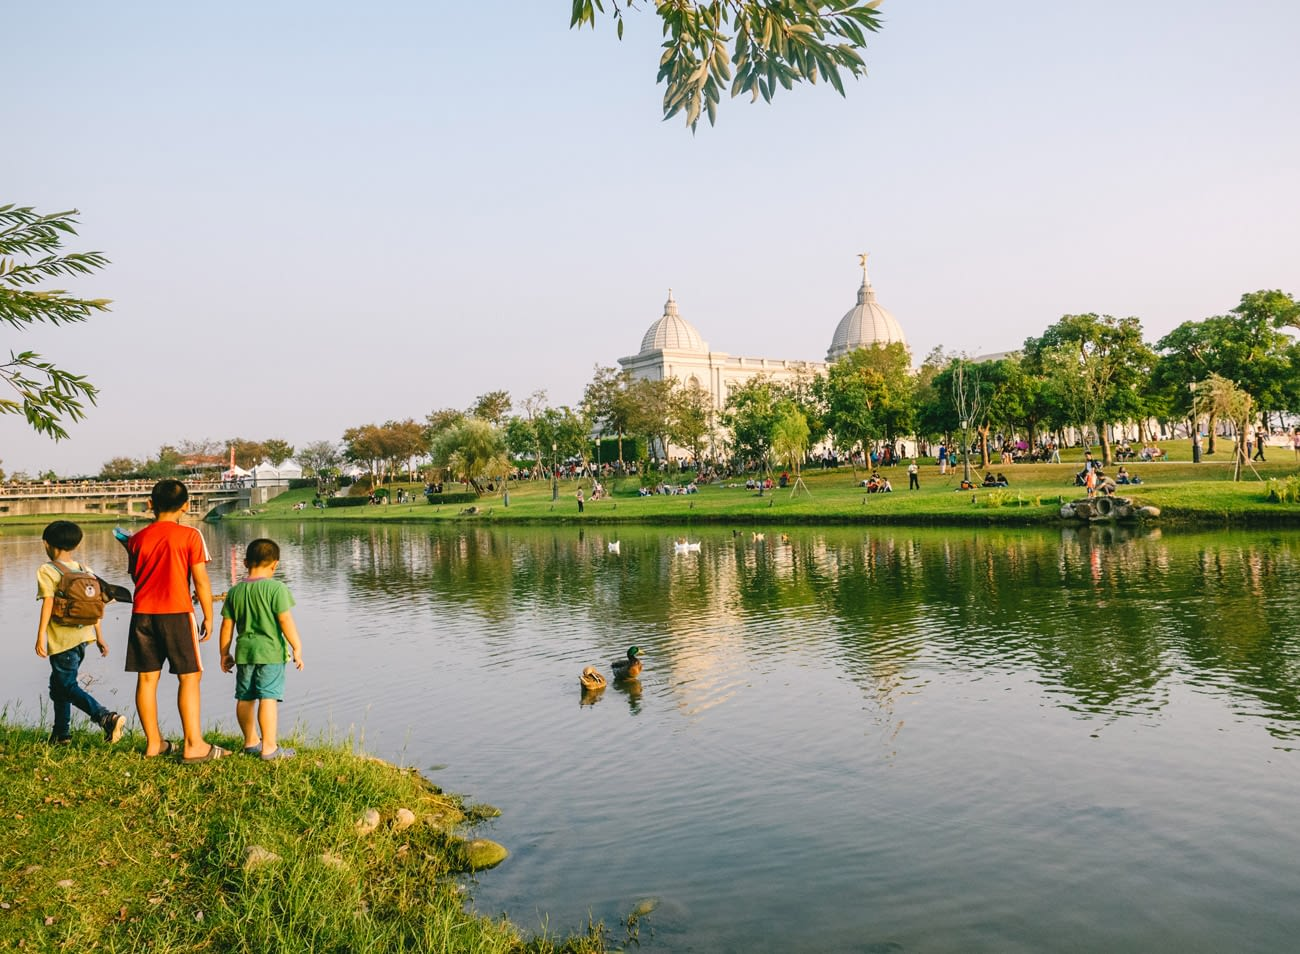 Tainan - Pokemon Go Safari Event - View of the Chimei museum from the lake